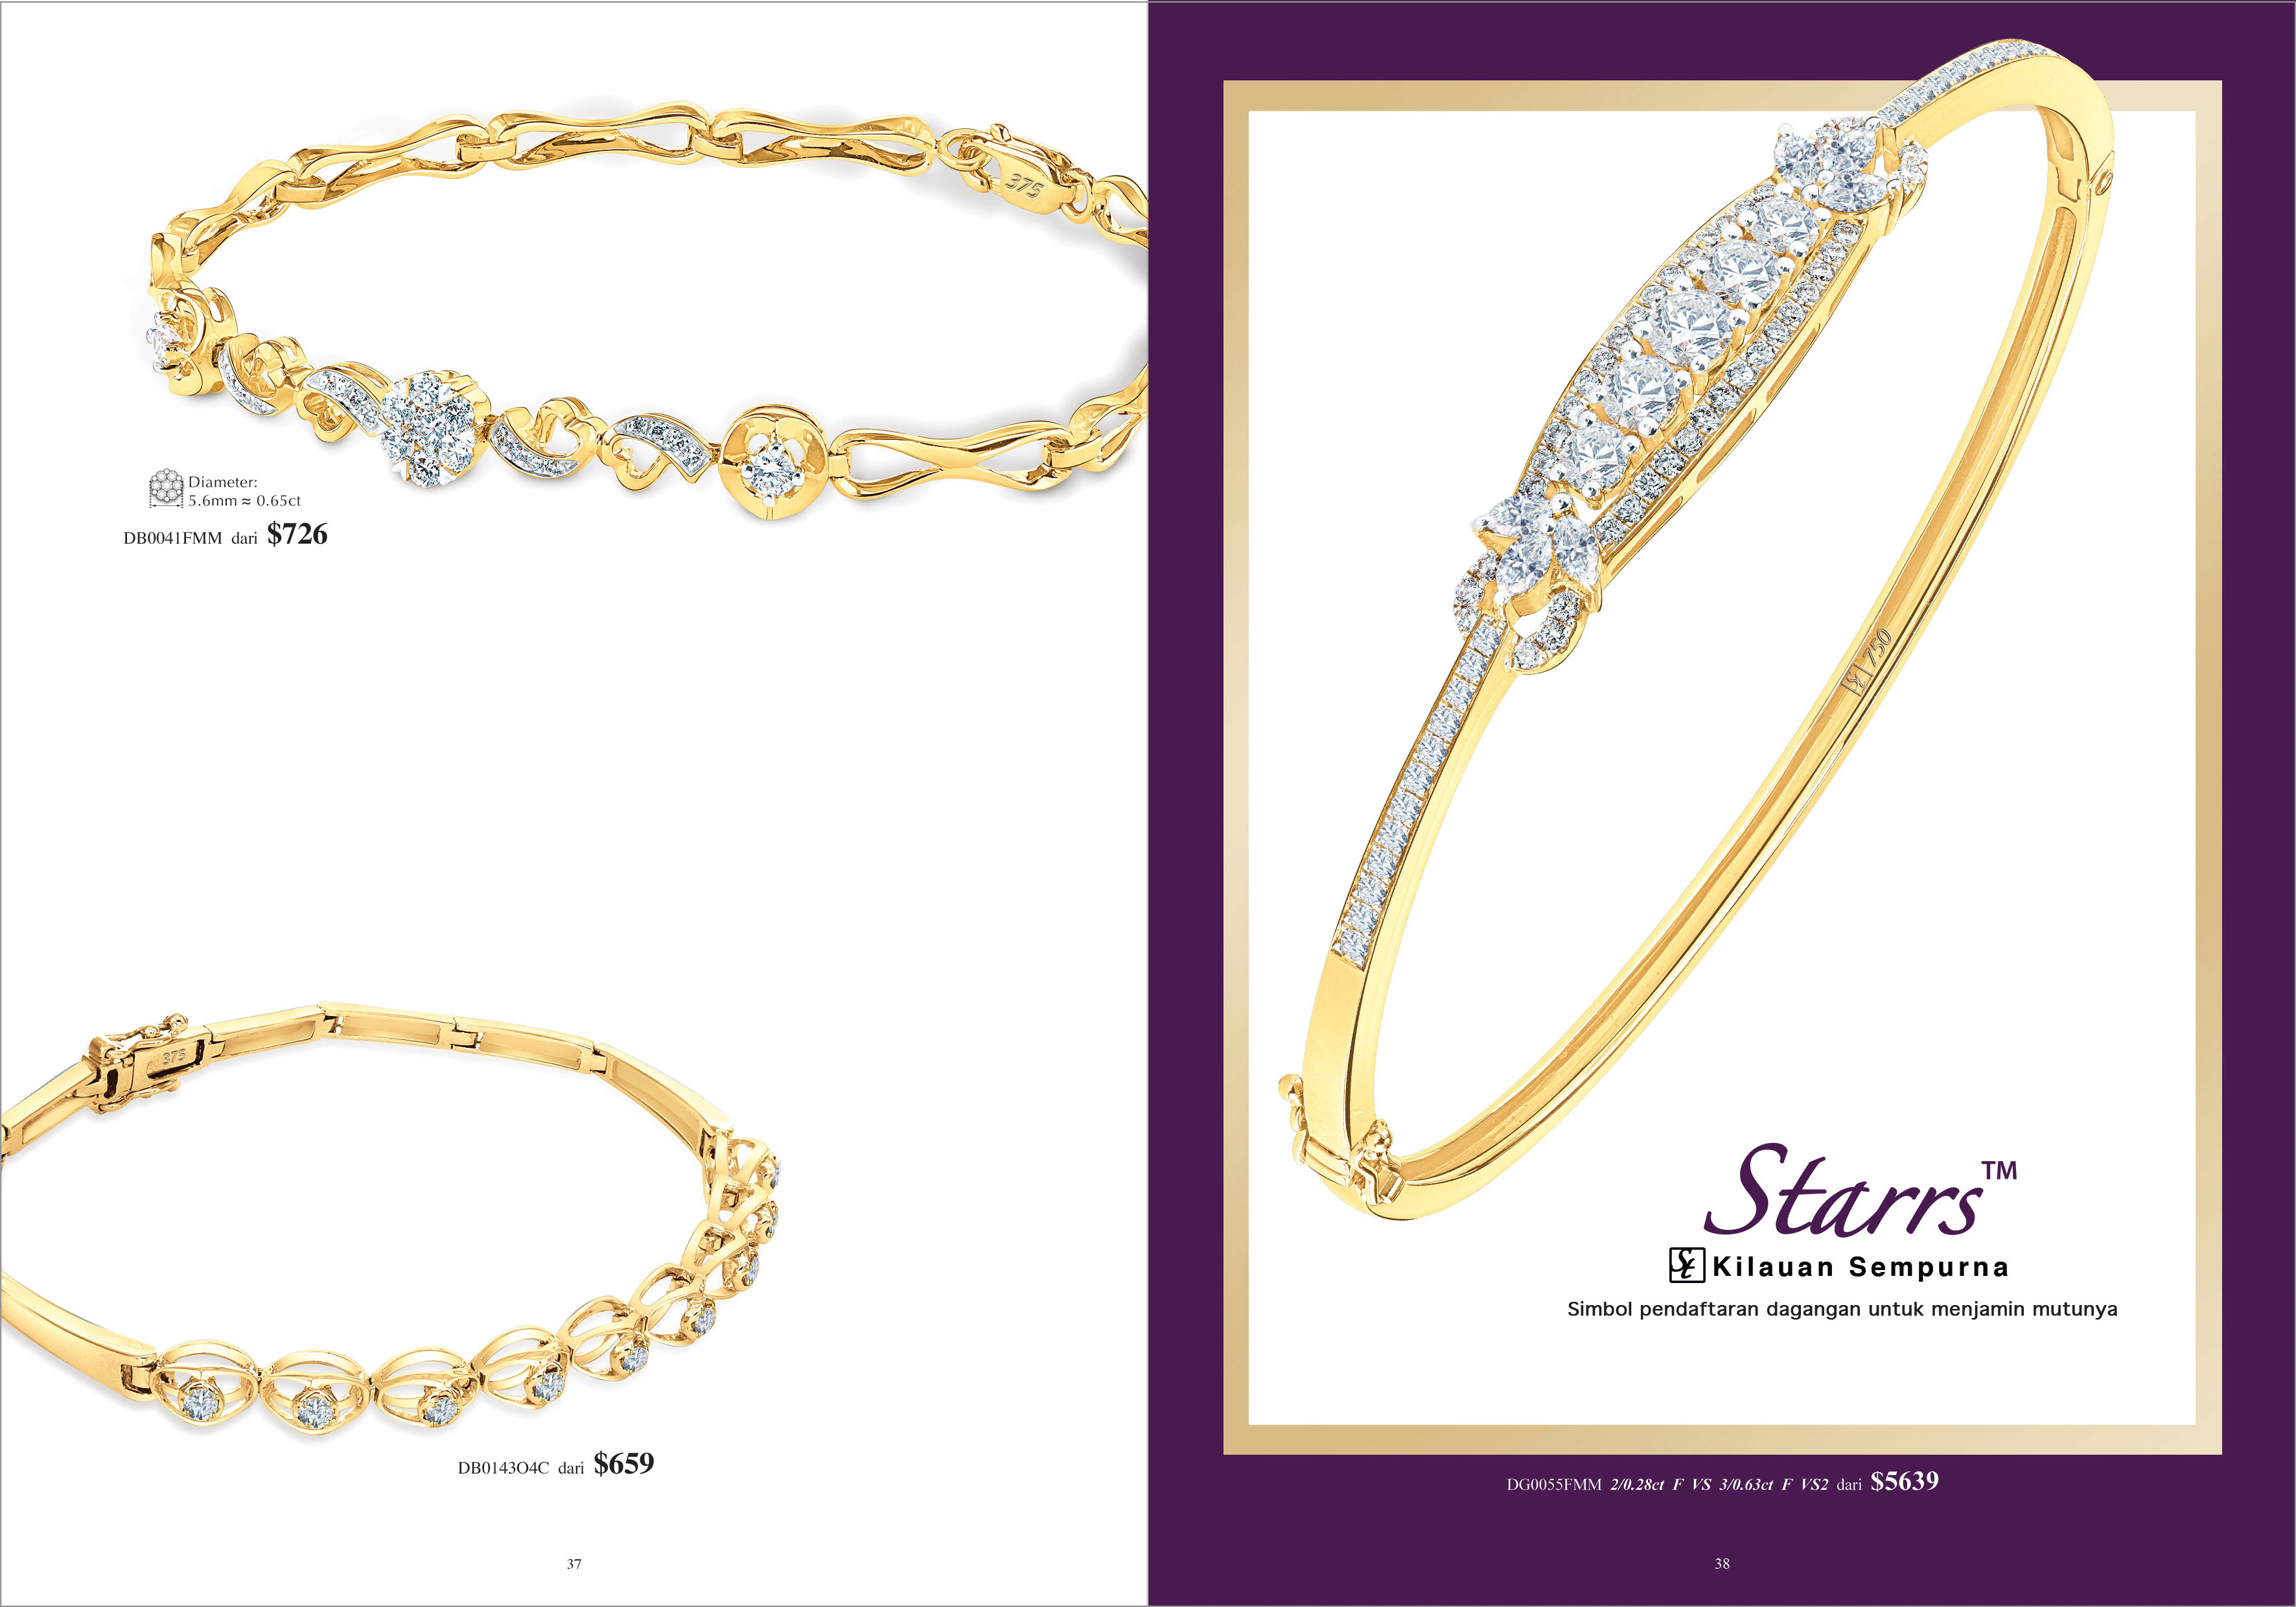 Ming Seng starrs diamond bangle bracelets